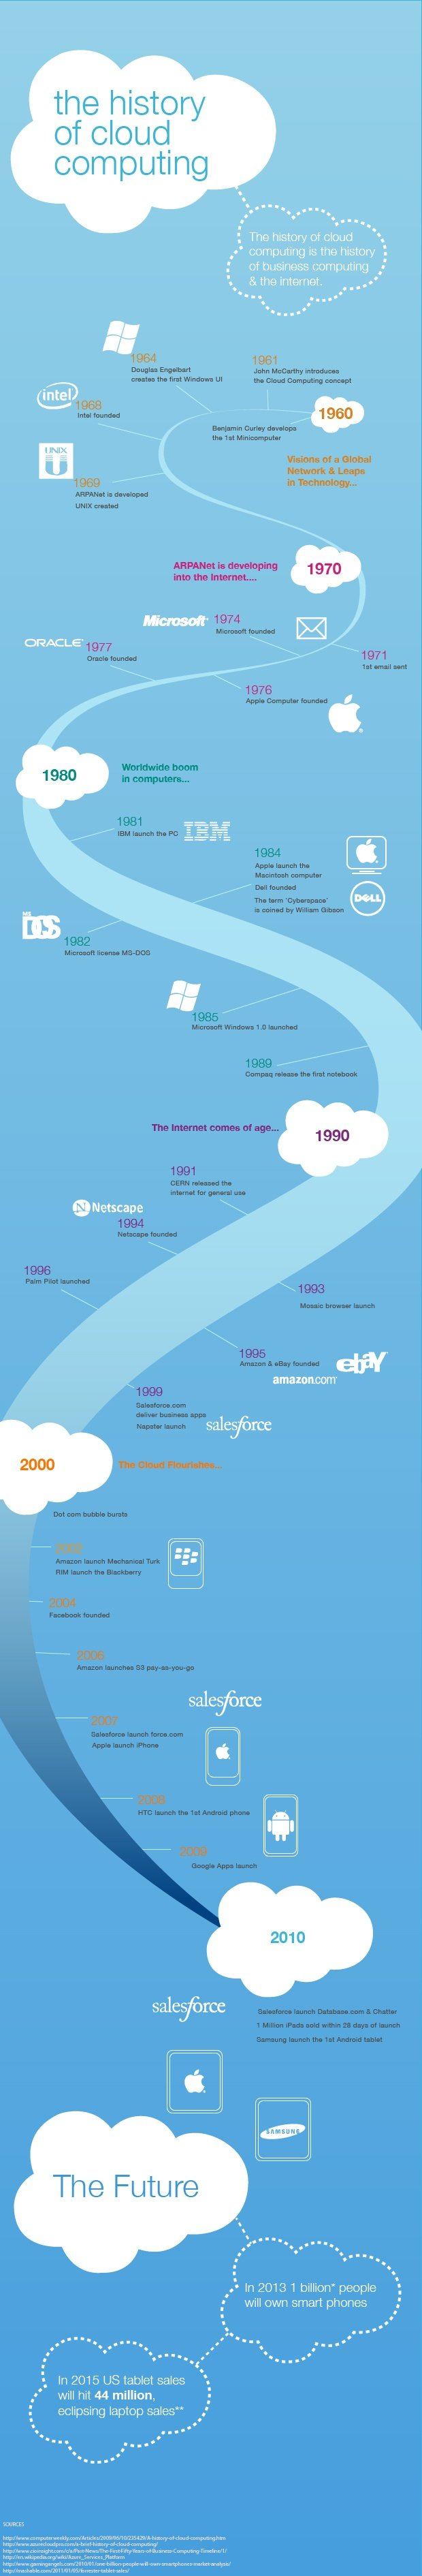 The history of cloud computing